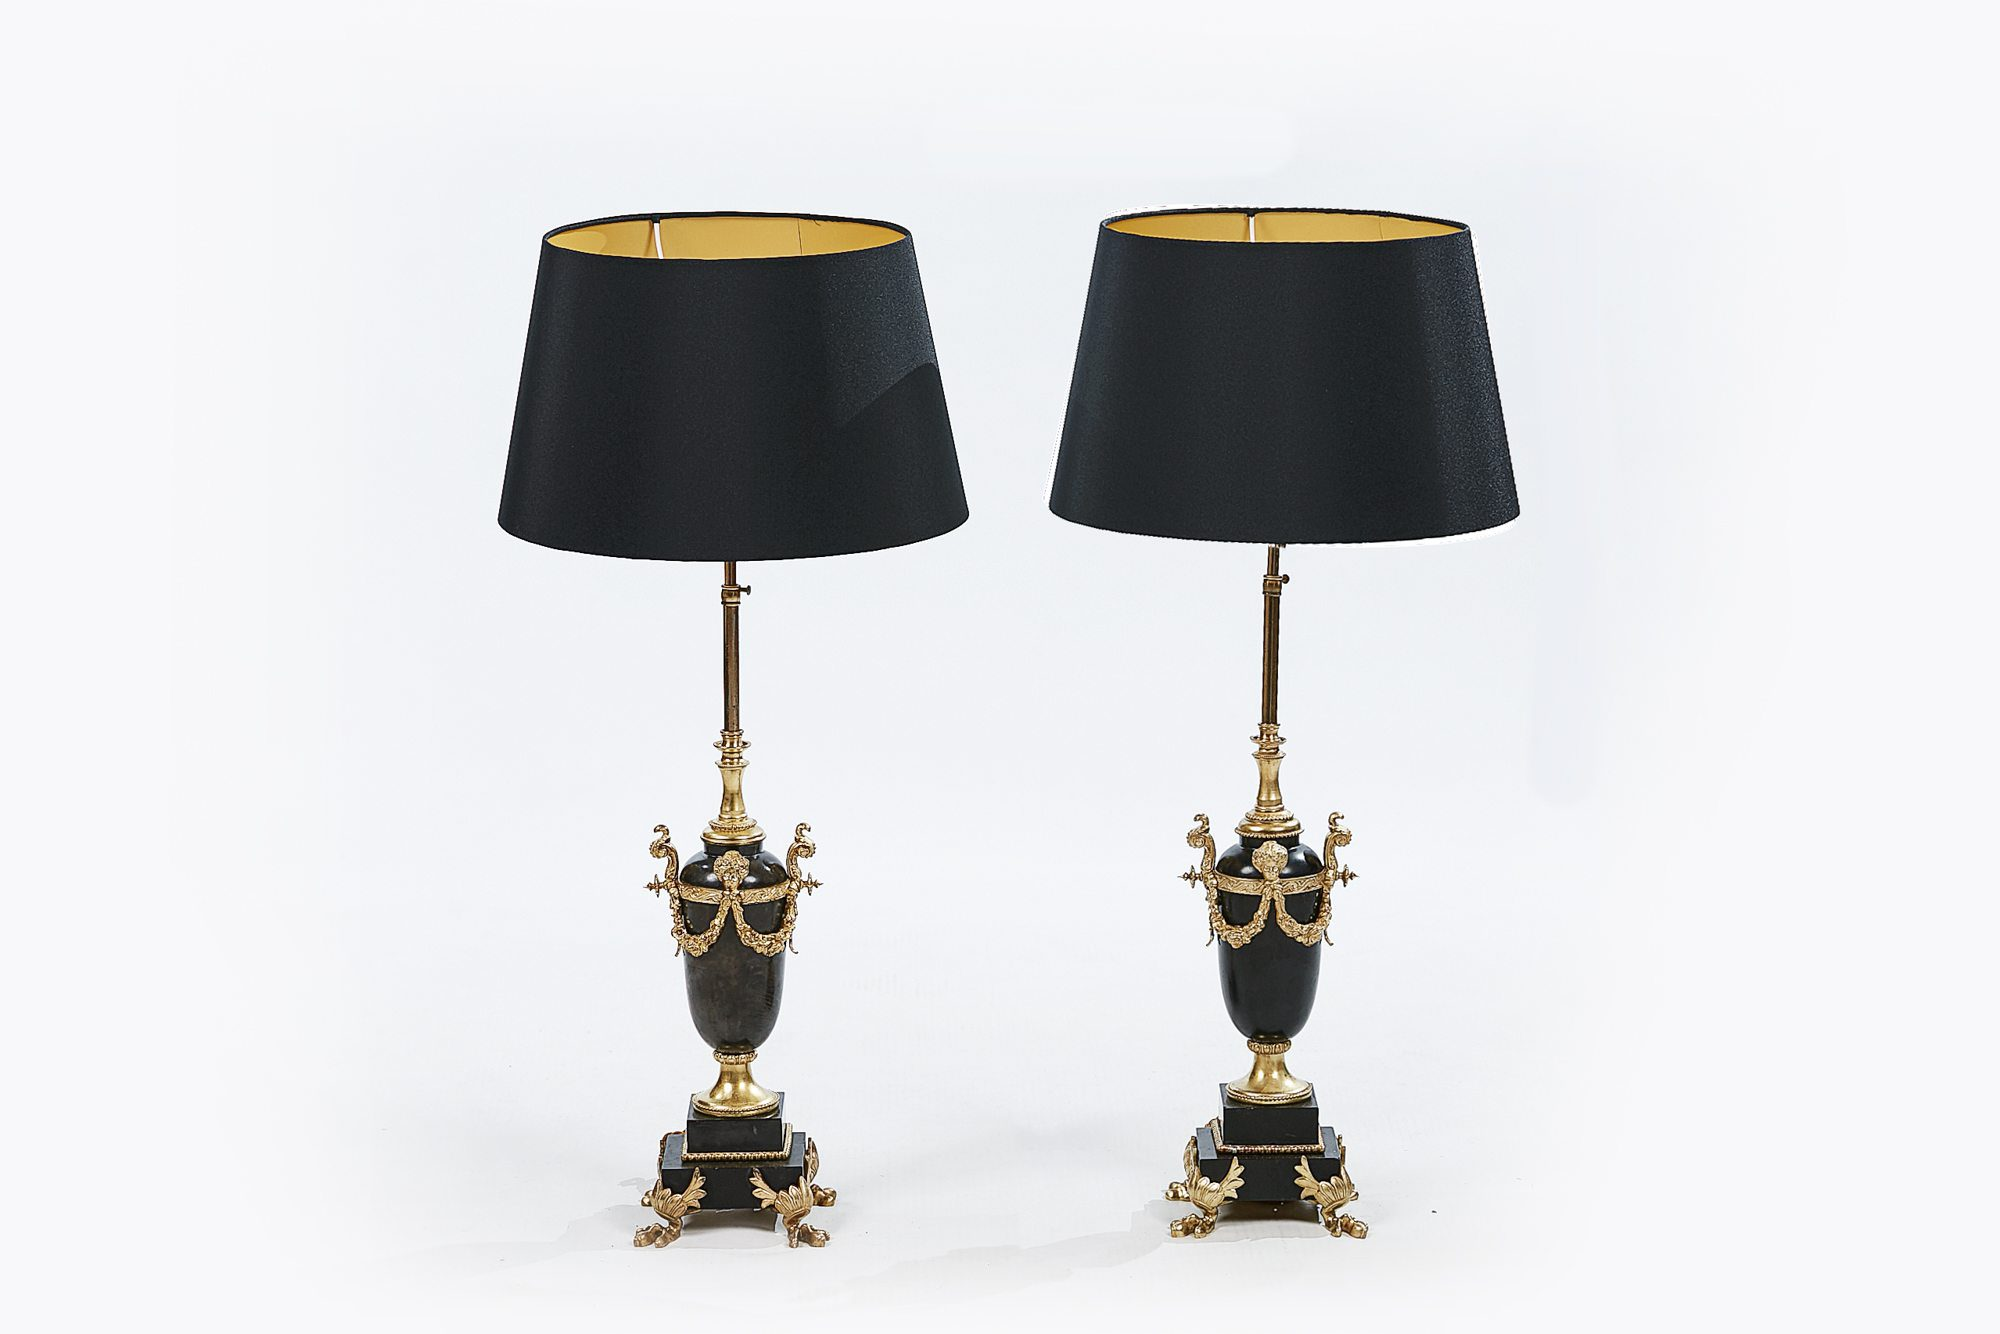 Candelabras and Lamps